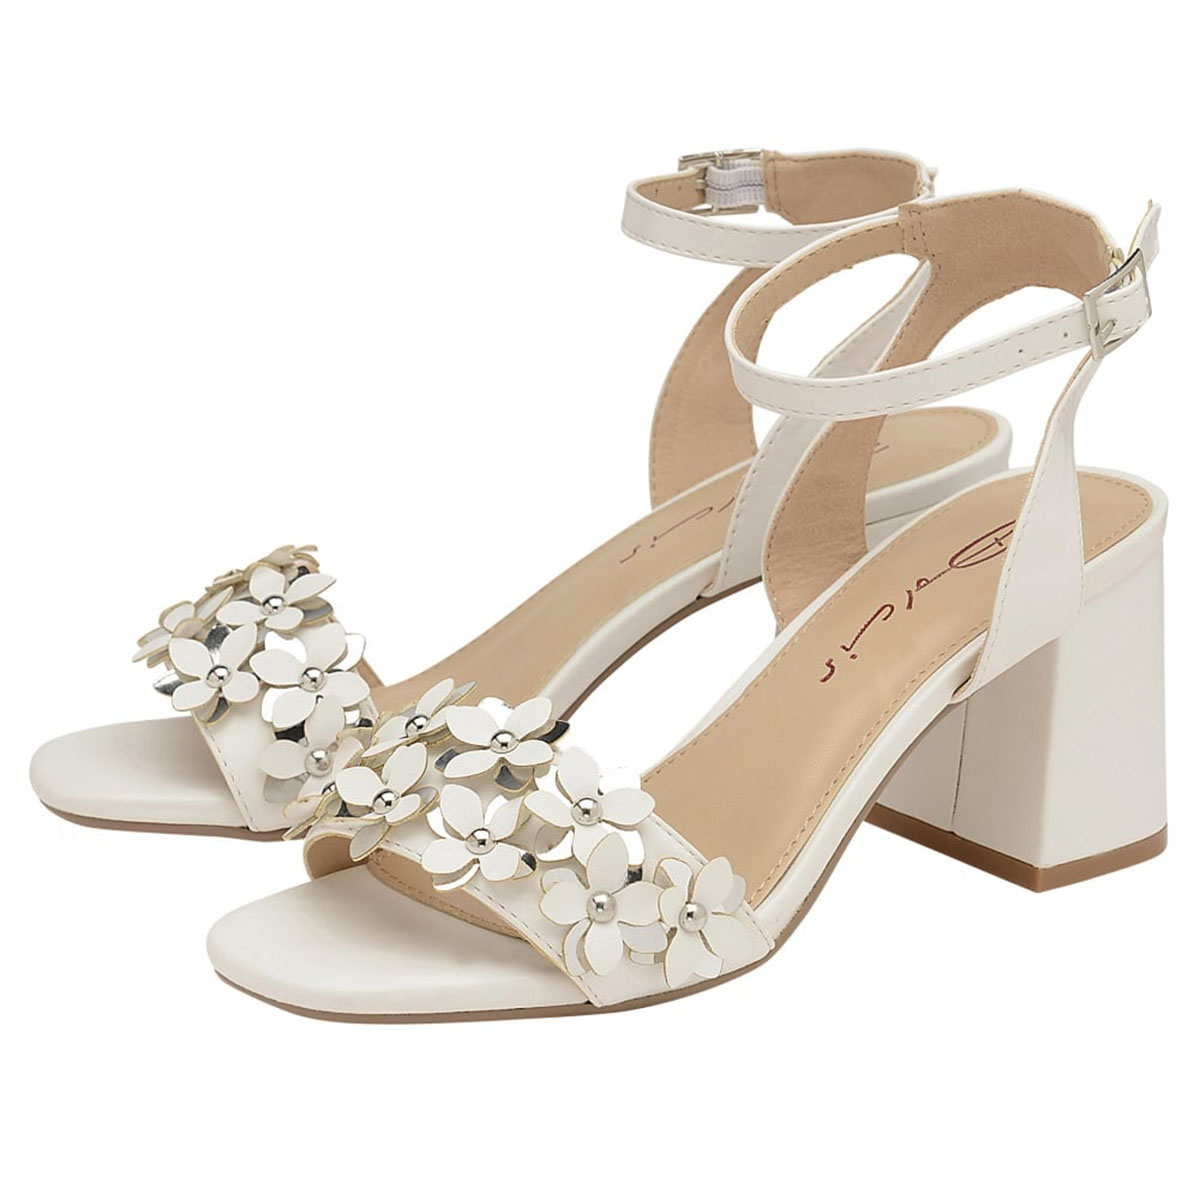 8b0de44fb839 Sentinel WOMENS DOLCIS NIAMH WHITE OPEN-TOE SUMMER STRAPPY COMFY SANDALS  SHOES UK 3-8